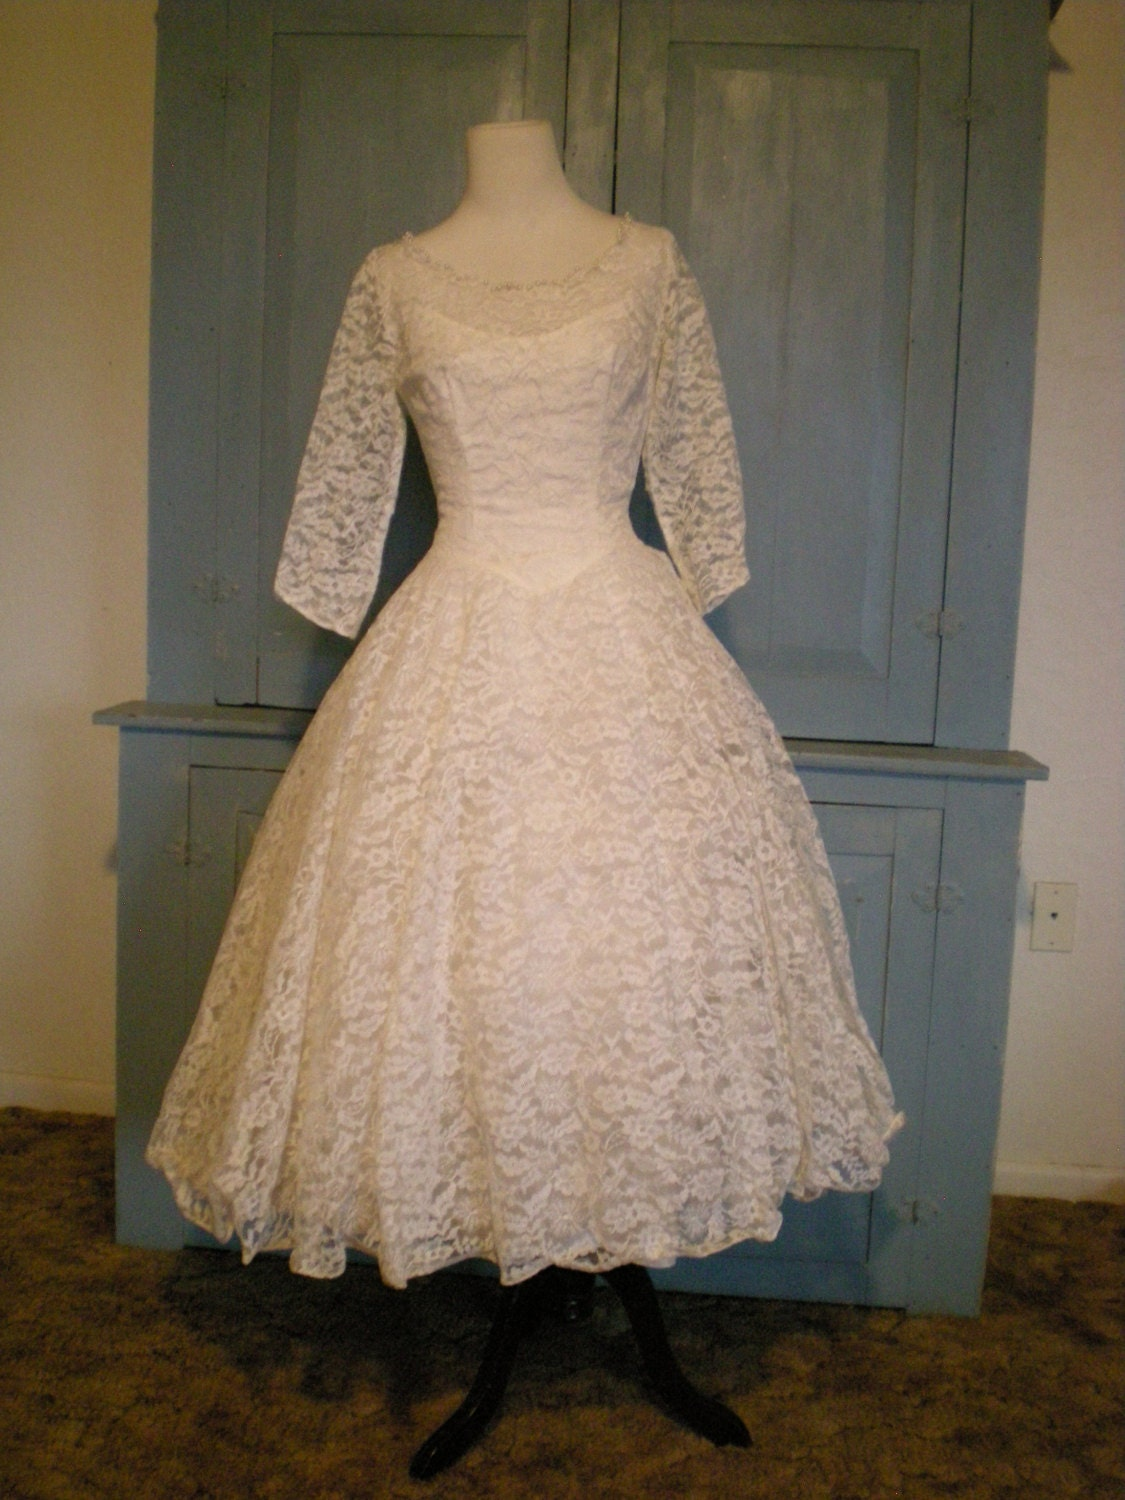 Vintage 1950s Rockabilly White Lace Wedding Dress